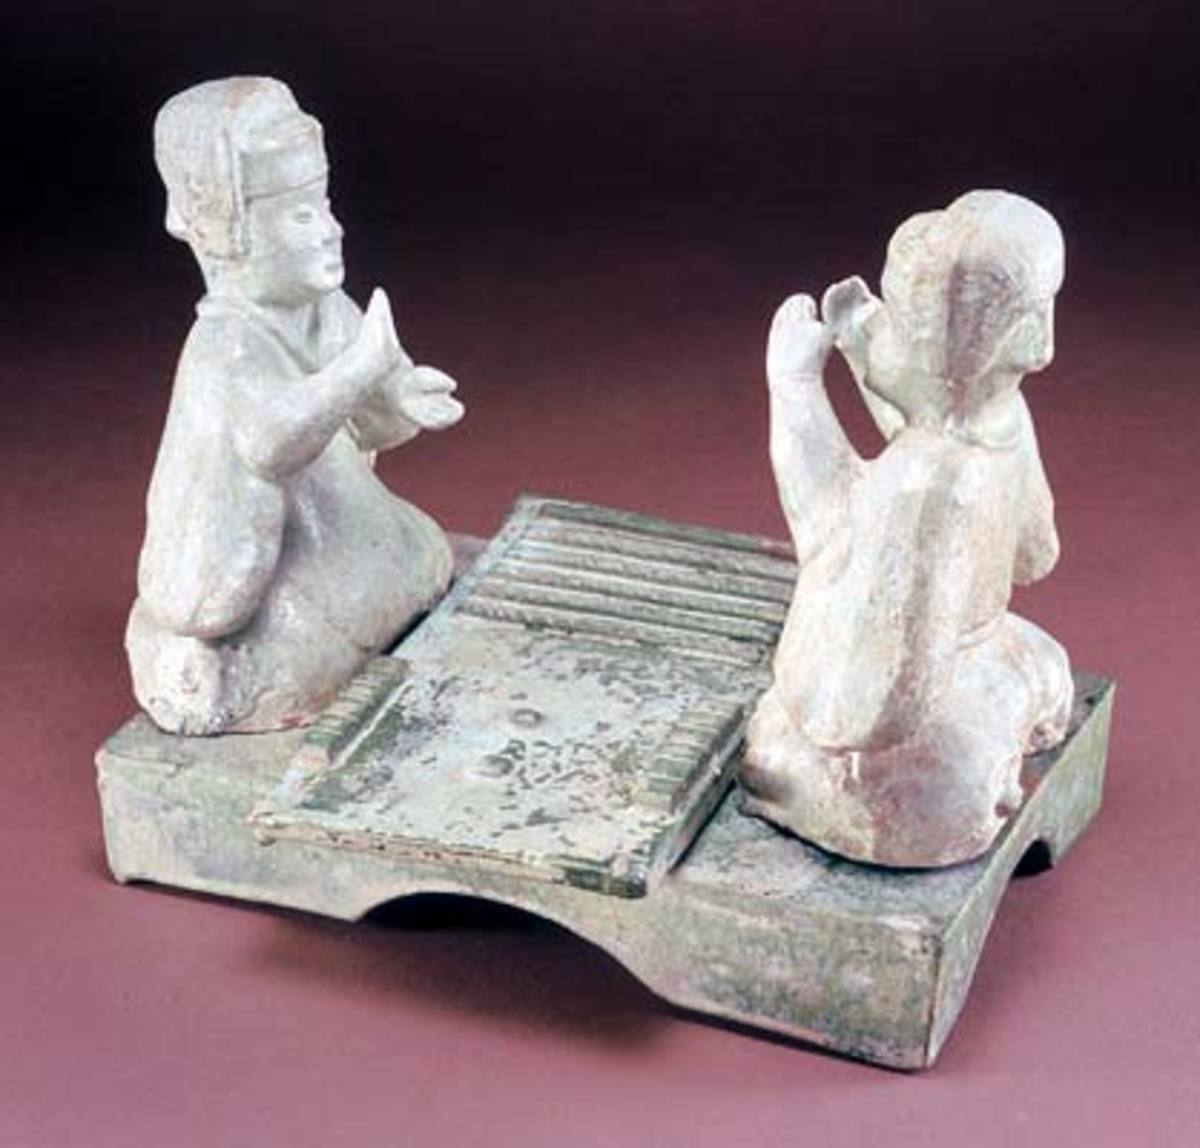 Liubo players, Han dynasty (206 BCE - 220 CE), China.